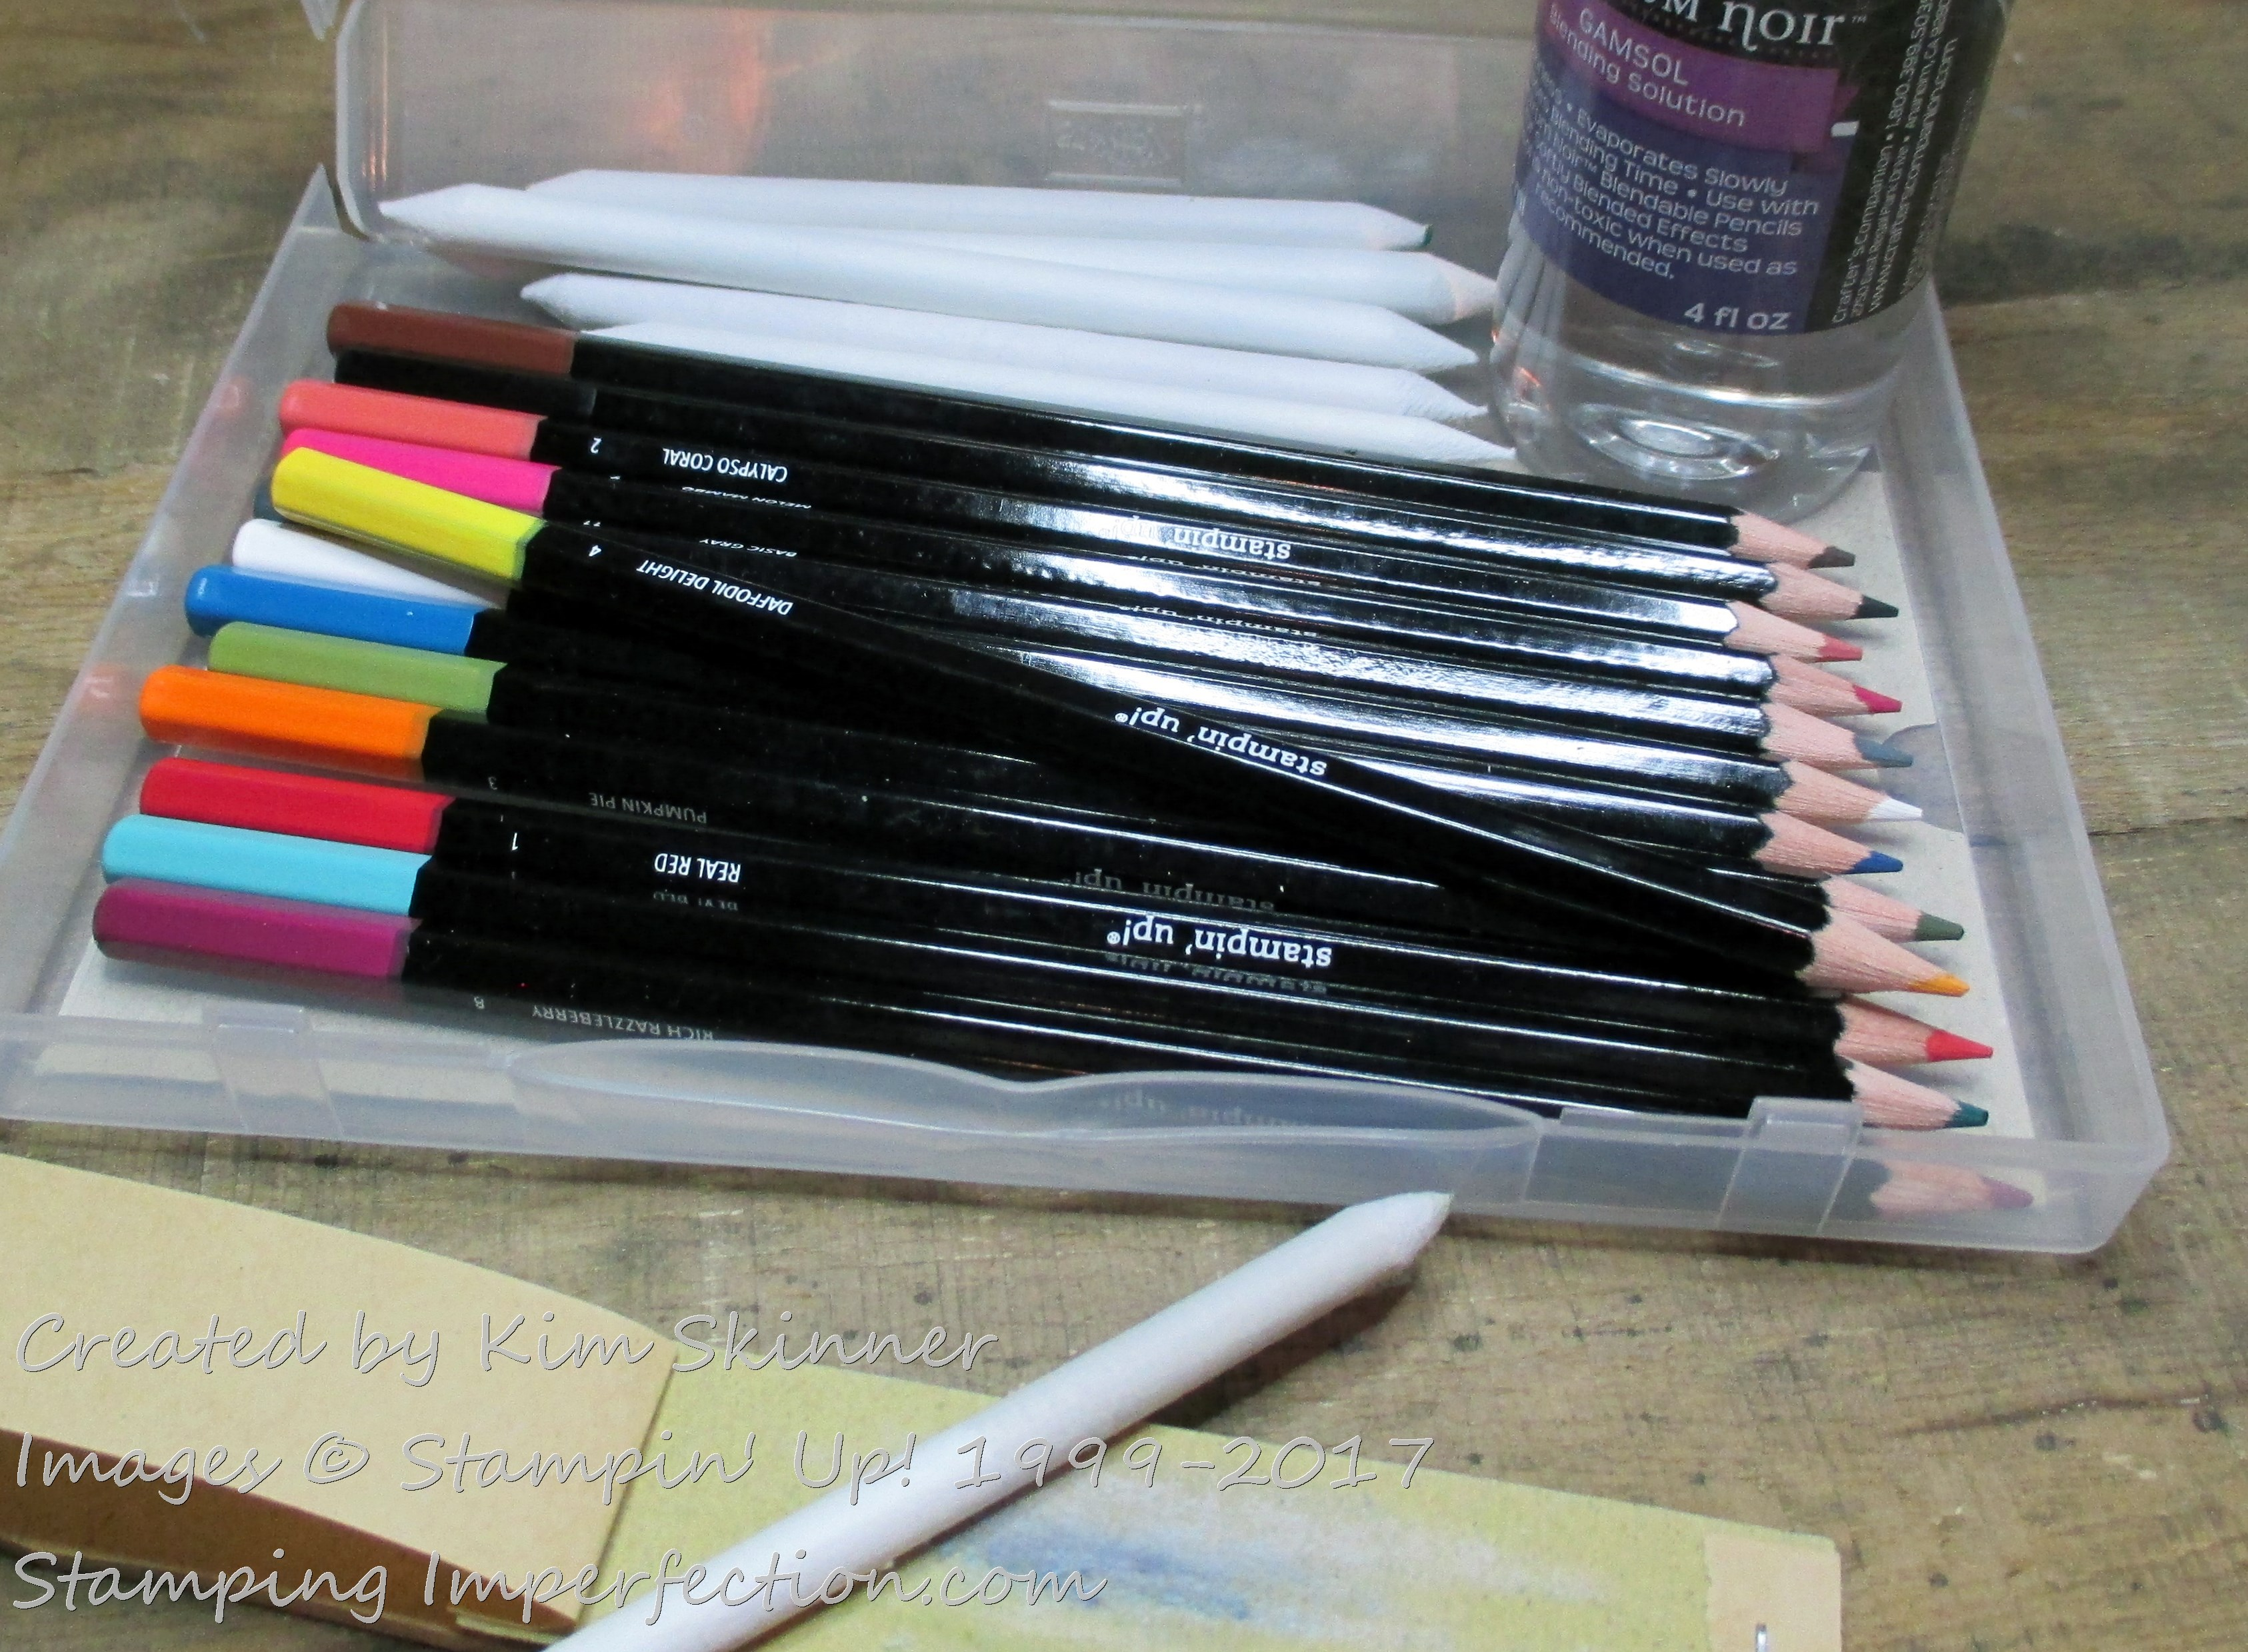 Stamping Imperfection stampin up colored pencils